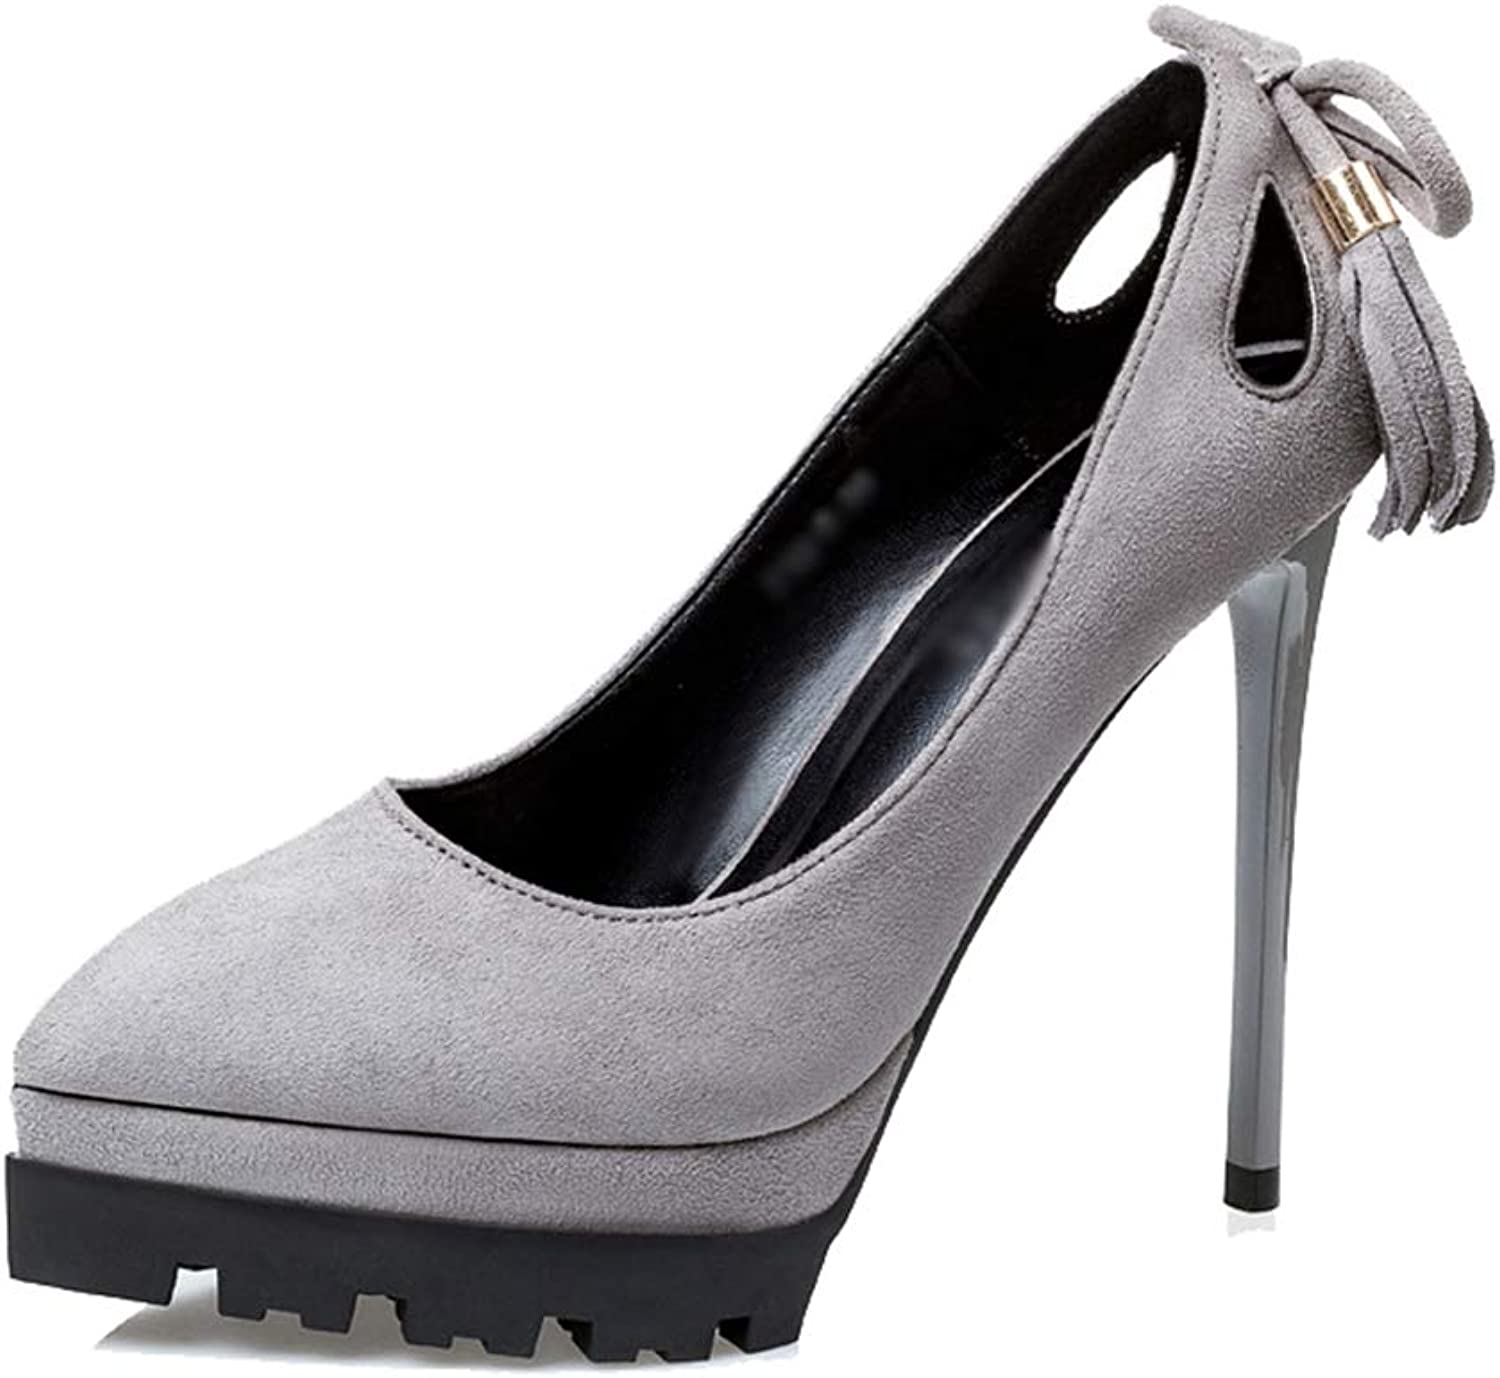 Drew Toby Women Pumps Pointed Toe Shallow Fashion Elegant Solid color High Heels